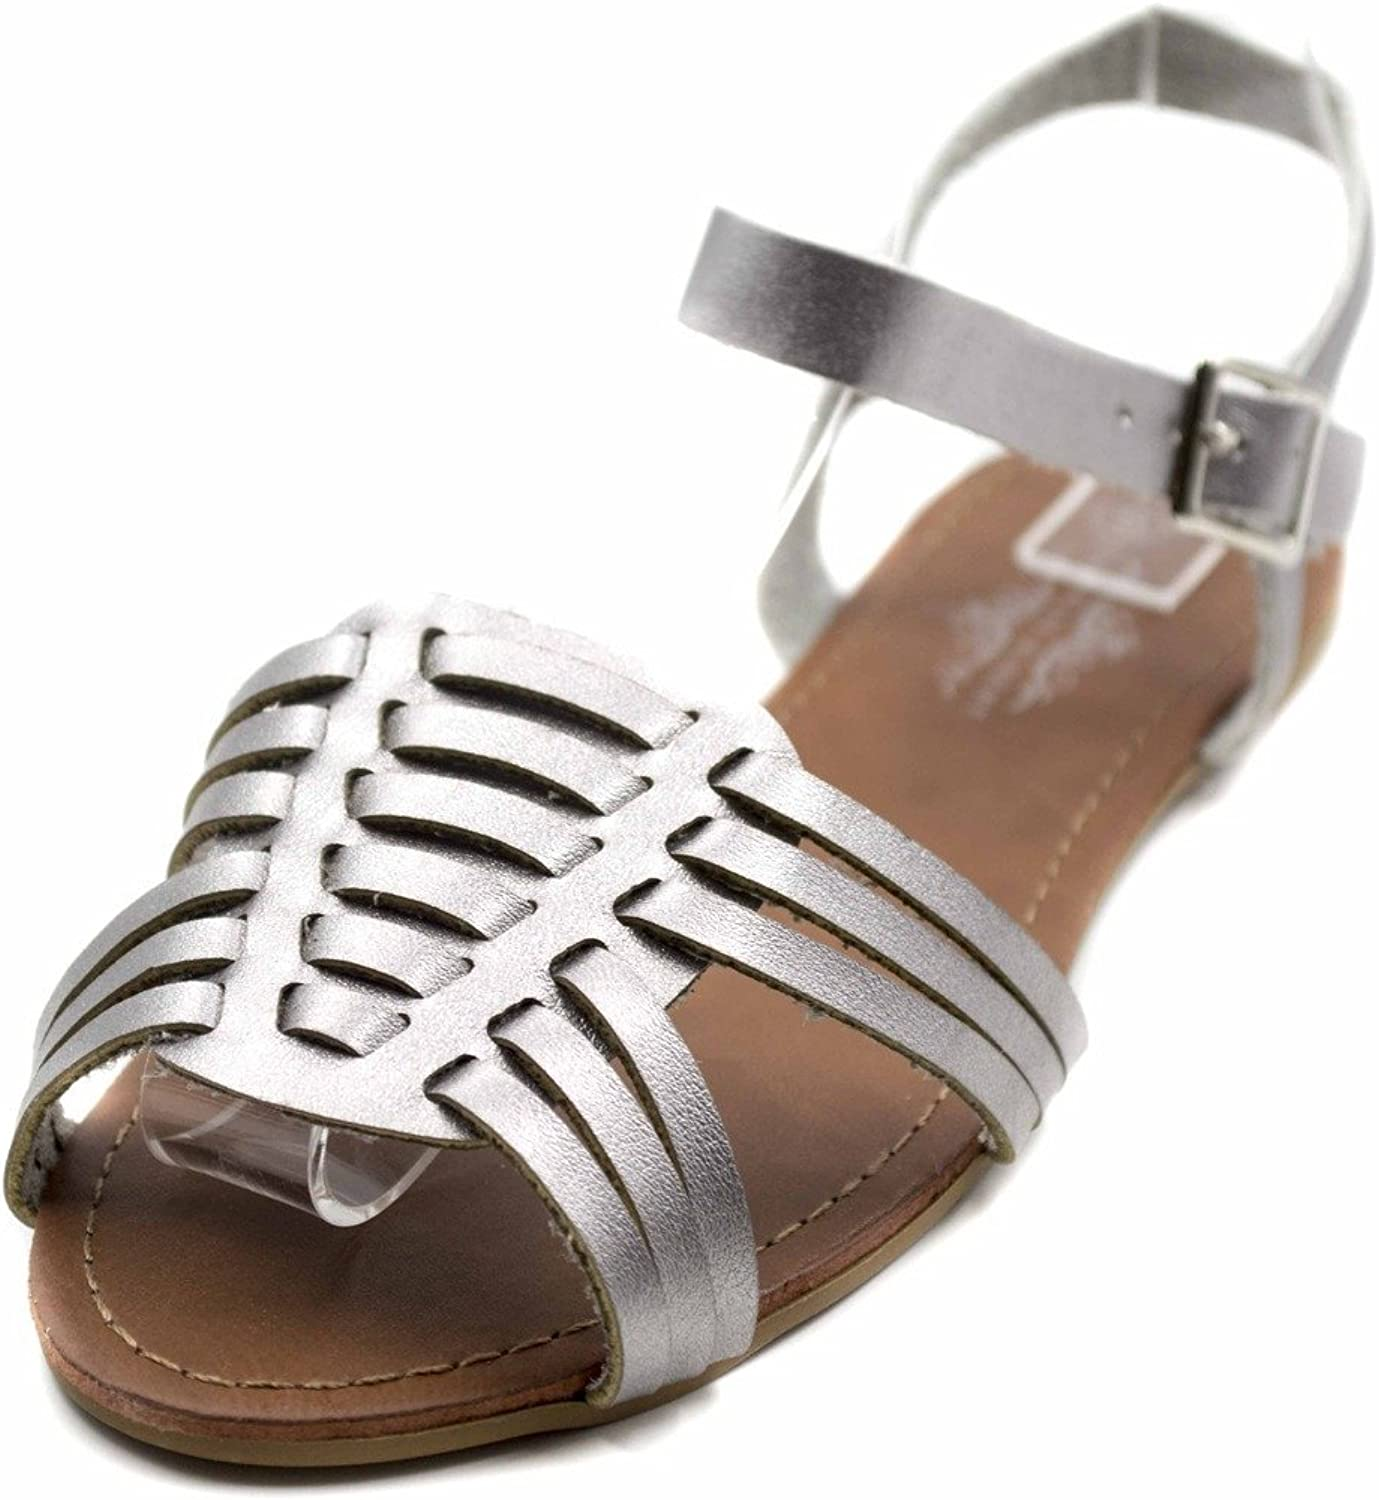 Orly shoes Charles Albert Women's Strappy Hurrache Cut Out Fisherman Sandal w Ankle Strap